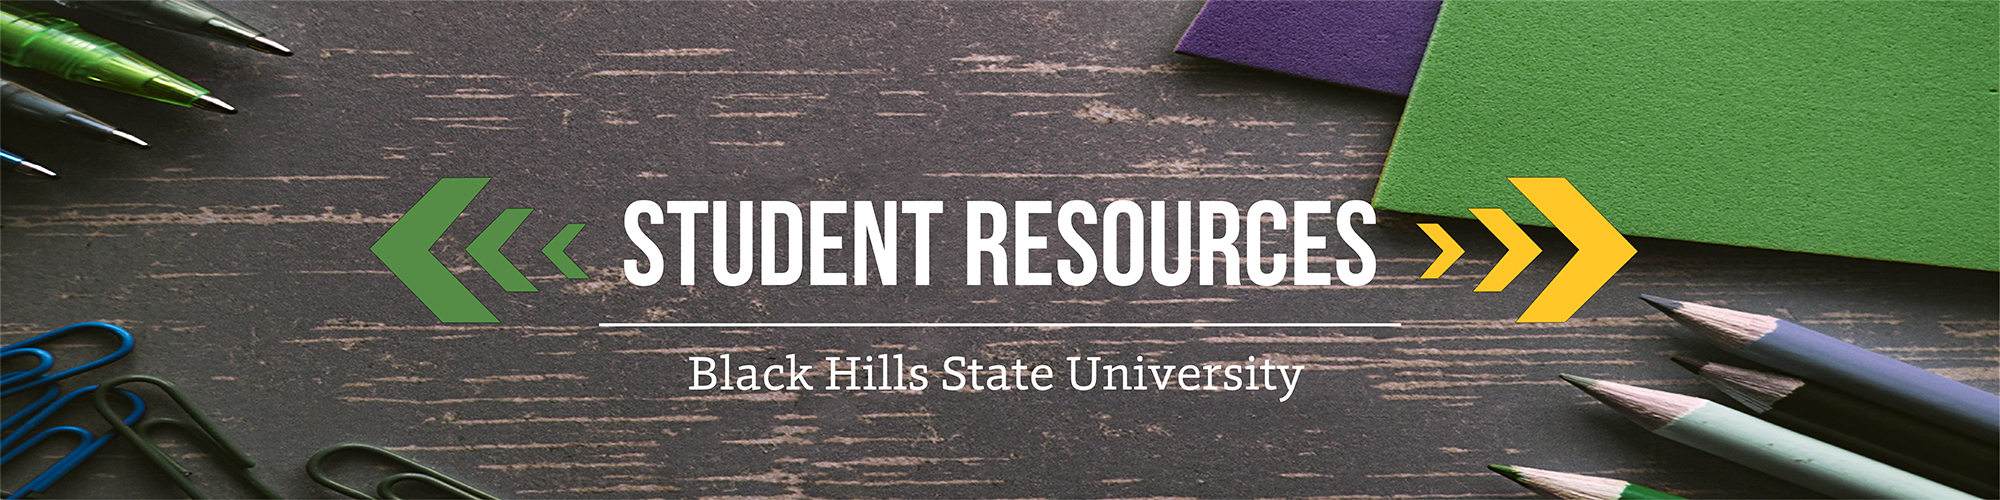 Student Resources Banner